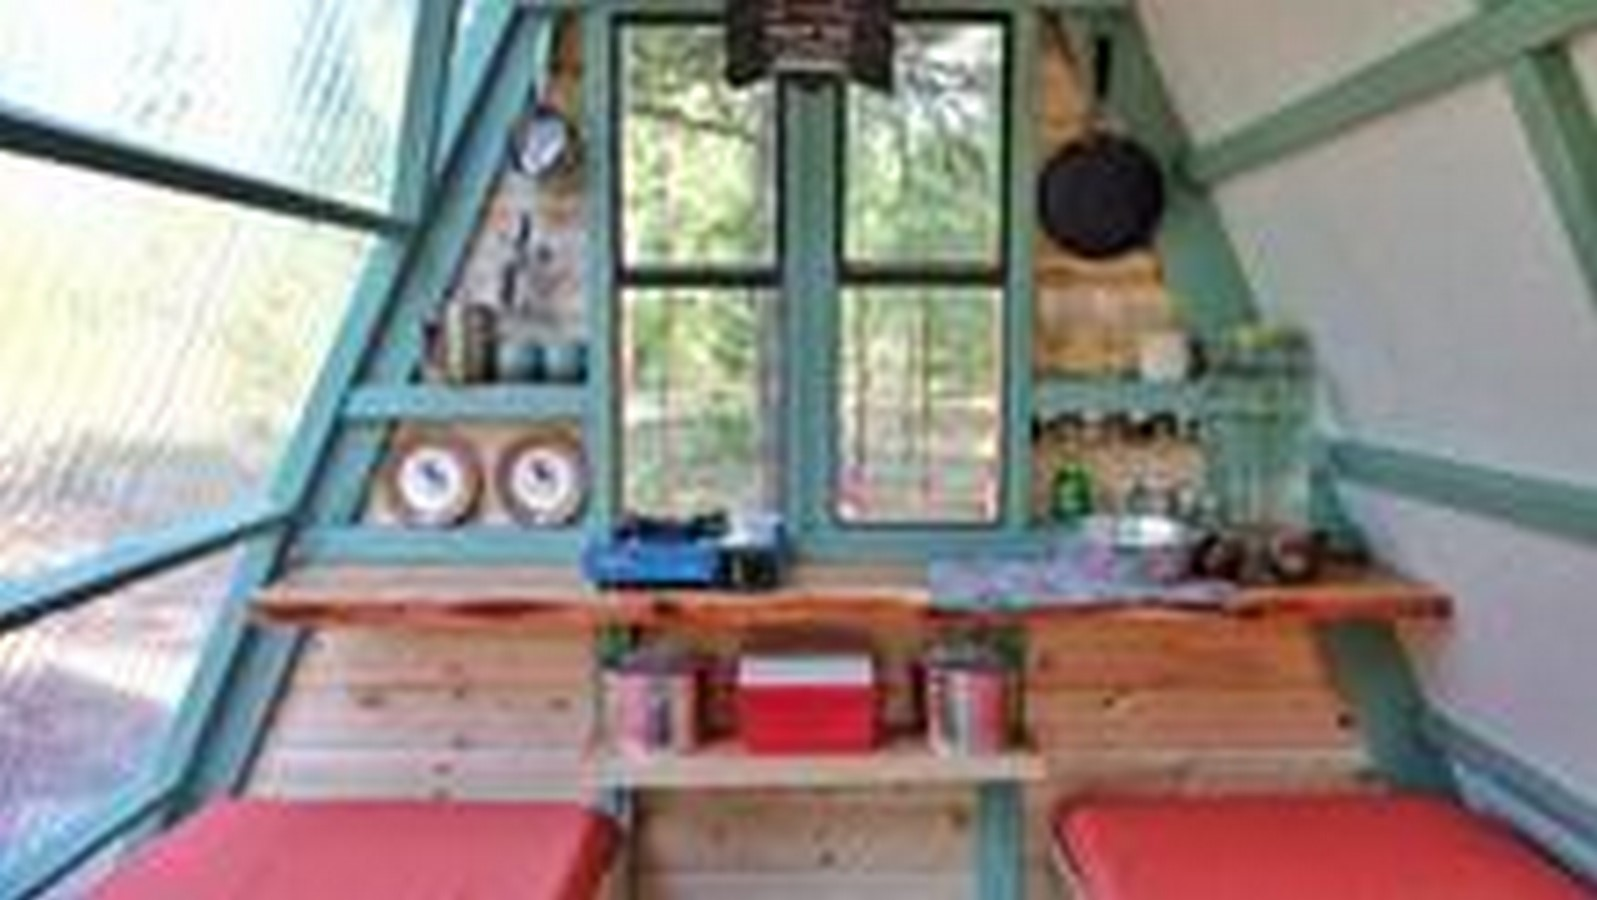 15 Examples of Tiny-home designs - Sheet44